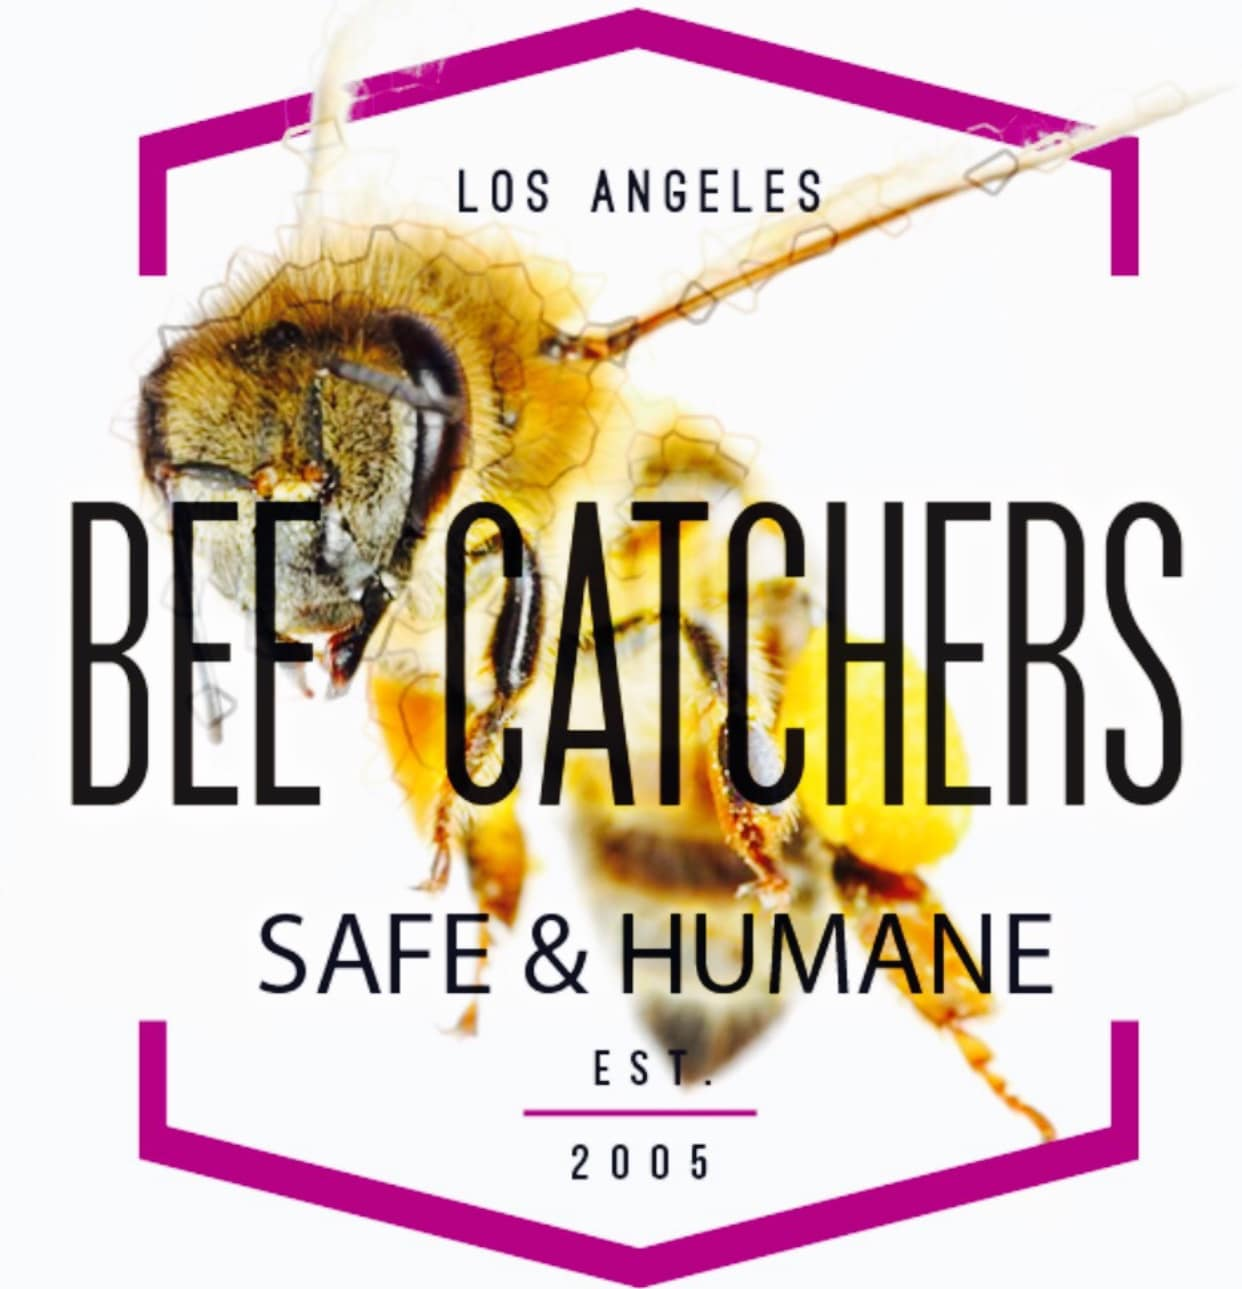 Bee Catchers Inc.